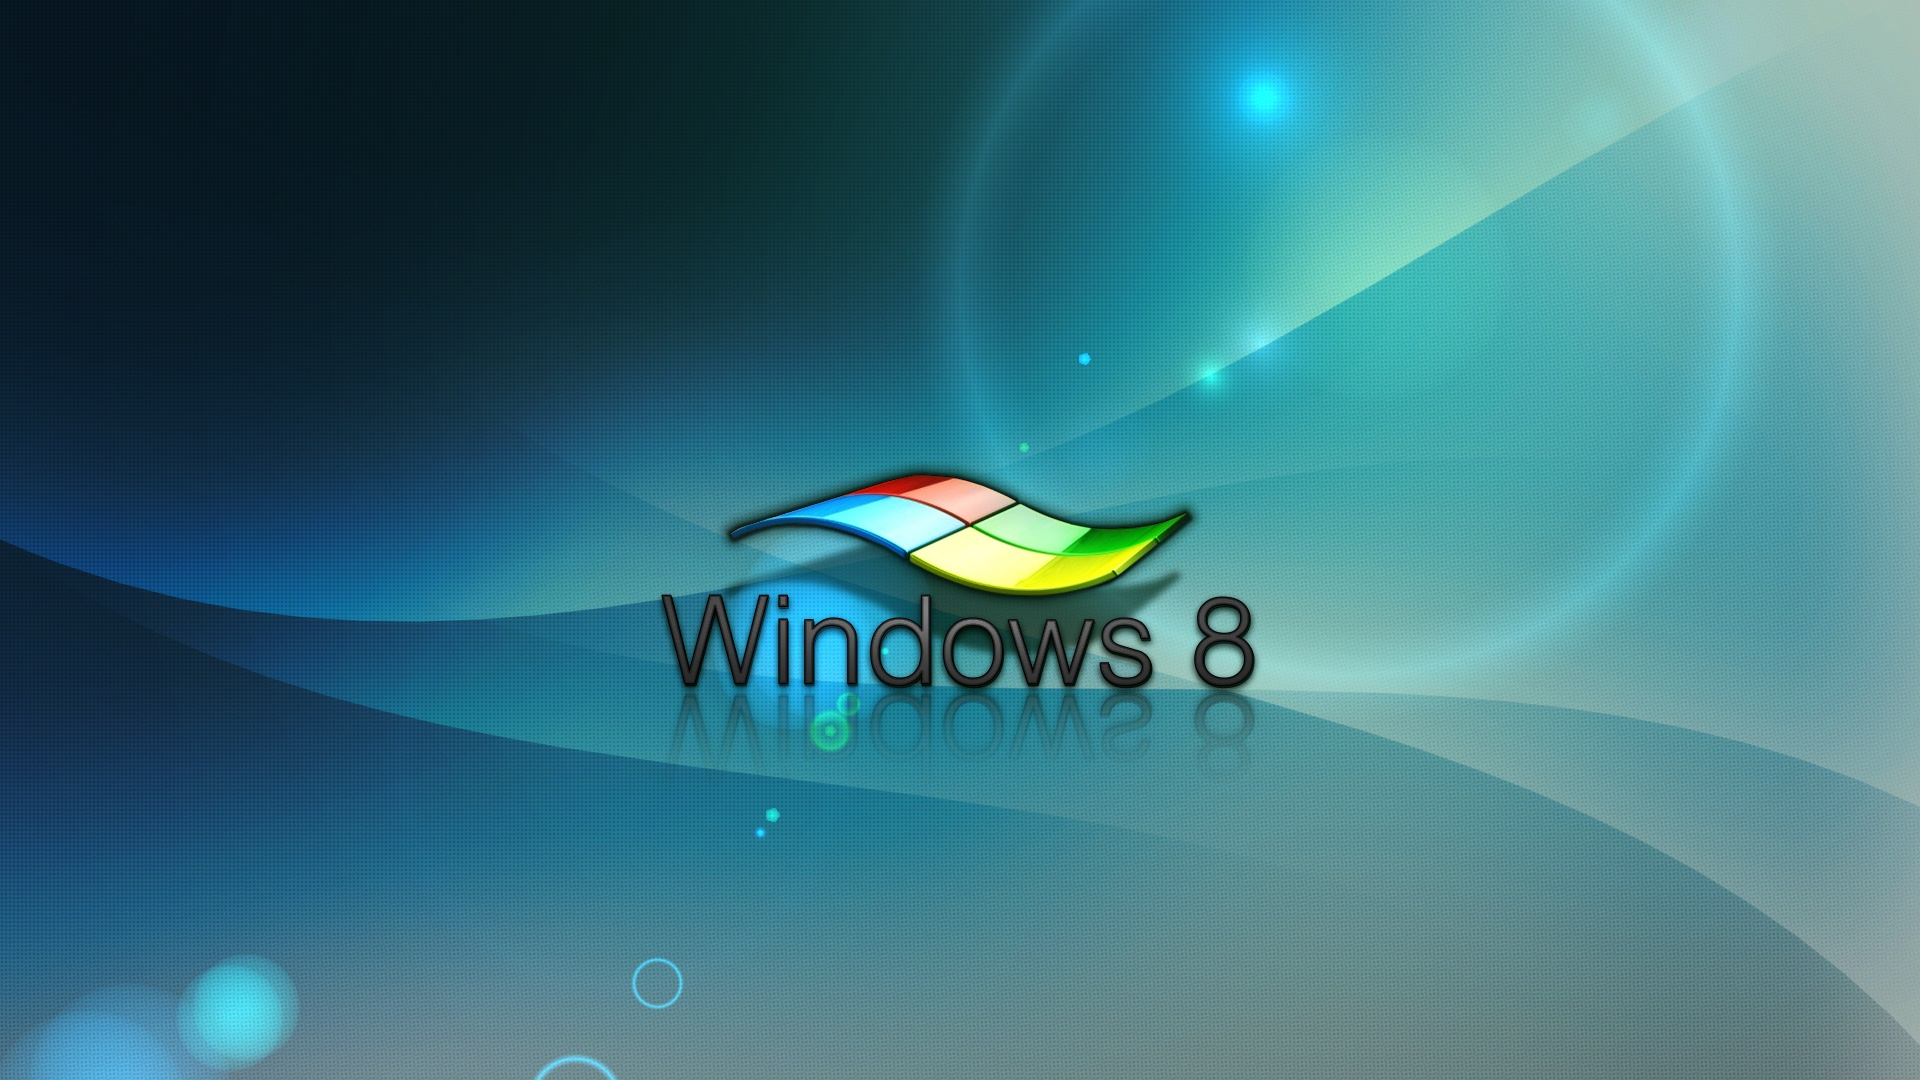 10 New Windows 8 Wallpaper Hd 3d For Desktop Full Hd 1920: 3D-Effekte Von Windows 8 1920x1200 HD Hintergrundbilder